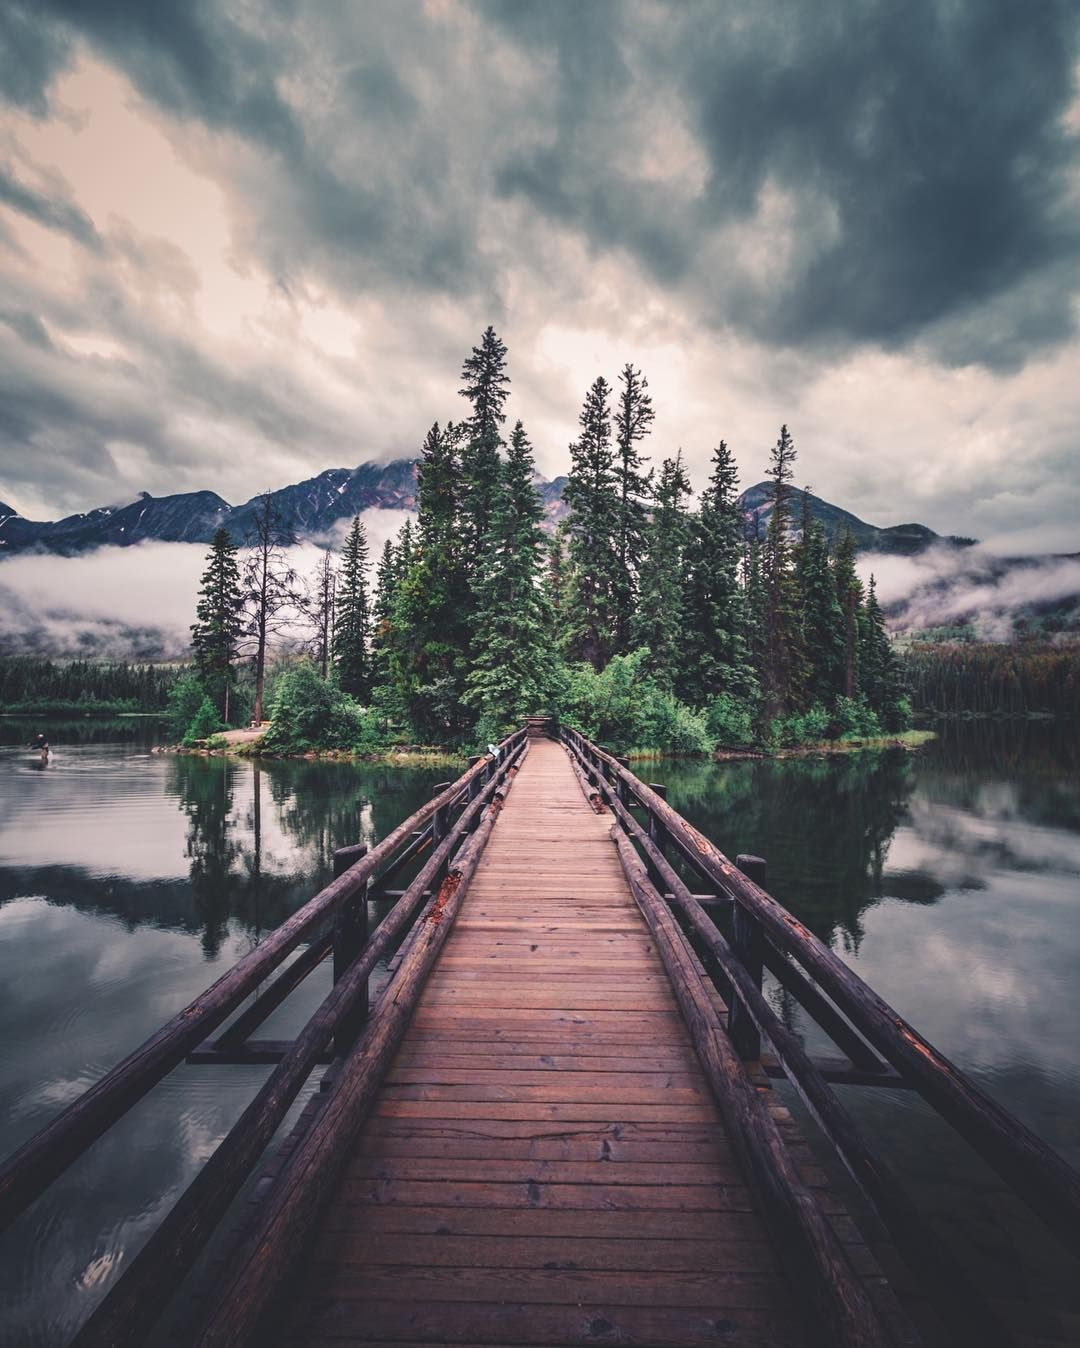 Instatravel Beautiful Landscape Photography By Joe Altwies Art Photography Beautiful Landscape Photography Beautiful Landscapes Best Landscape Photography